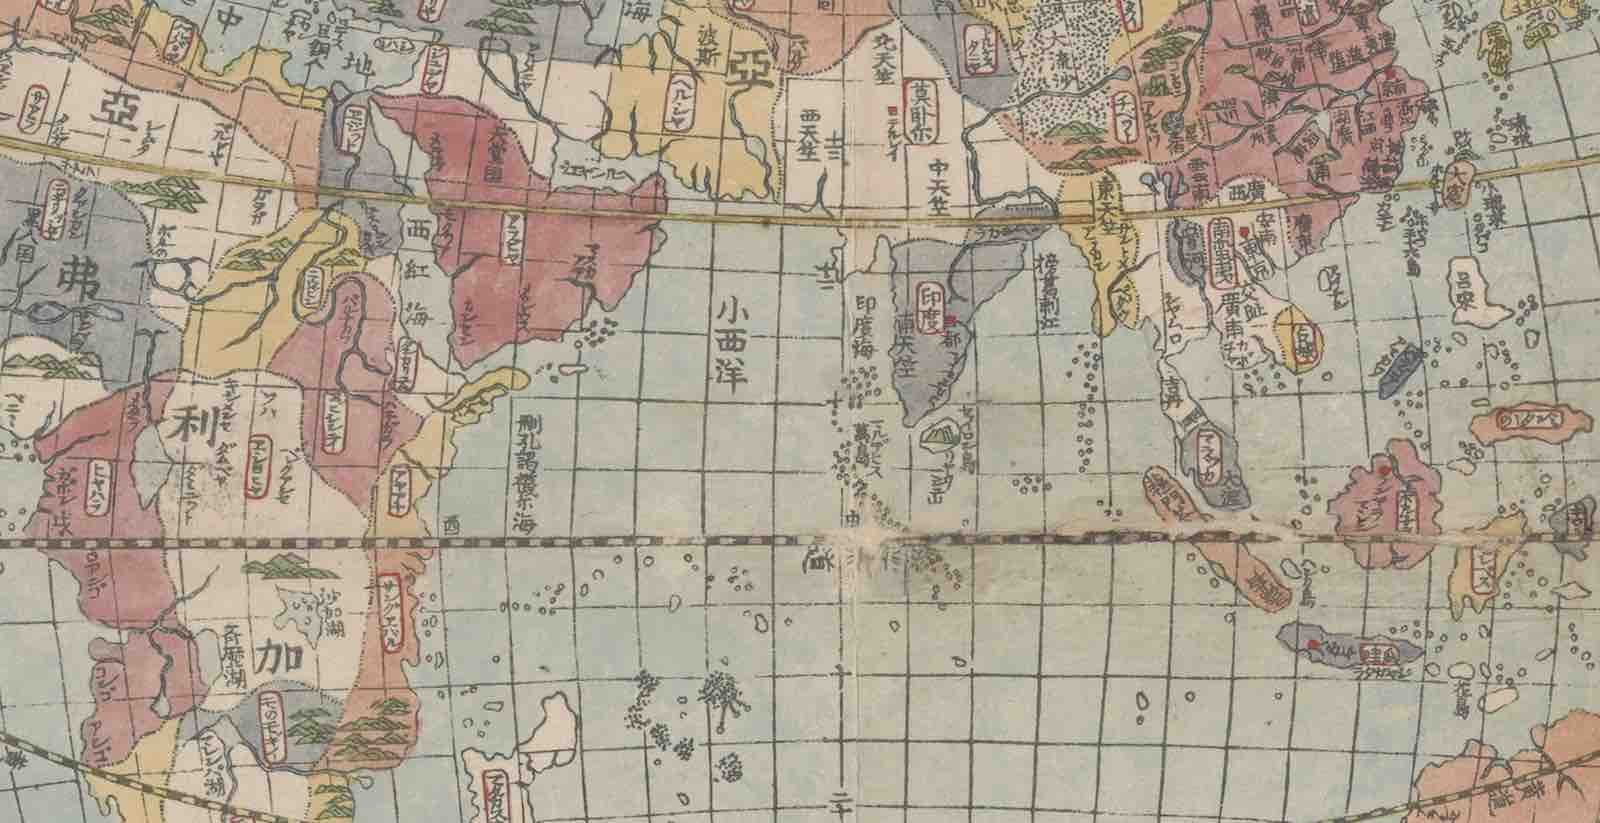 Indian Ocean section of a map of the world by Japanese cartographer Sōkichi Hashimoto, 1796 (Photo: Stanford Libraries)